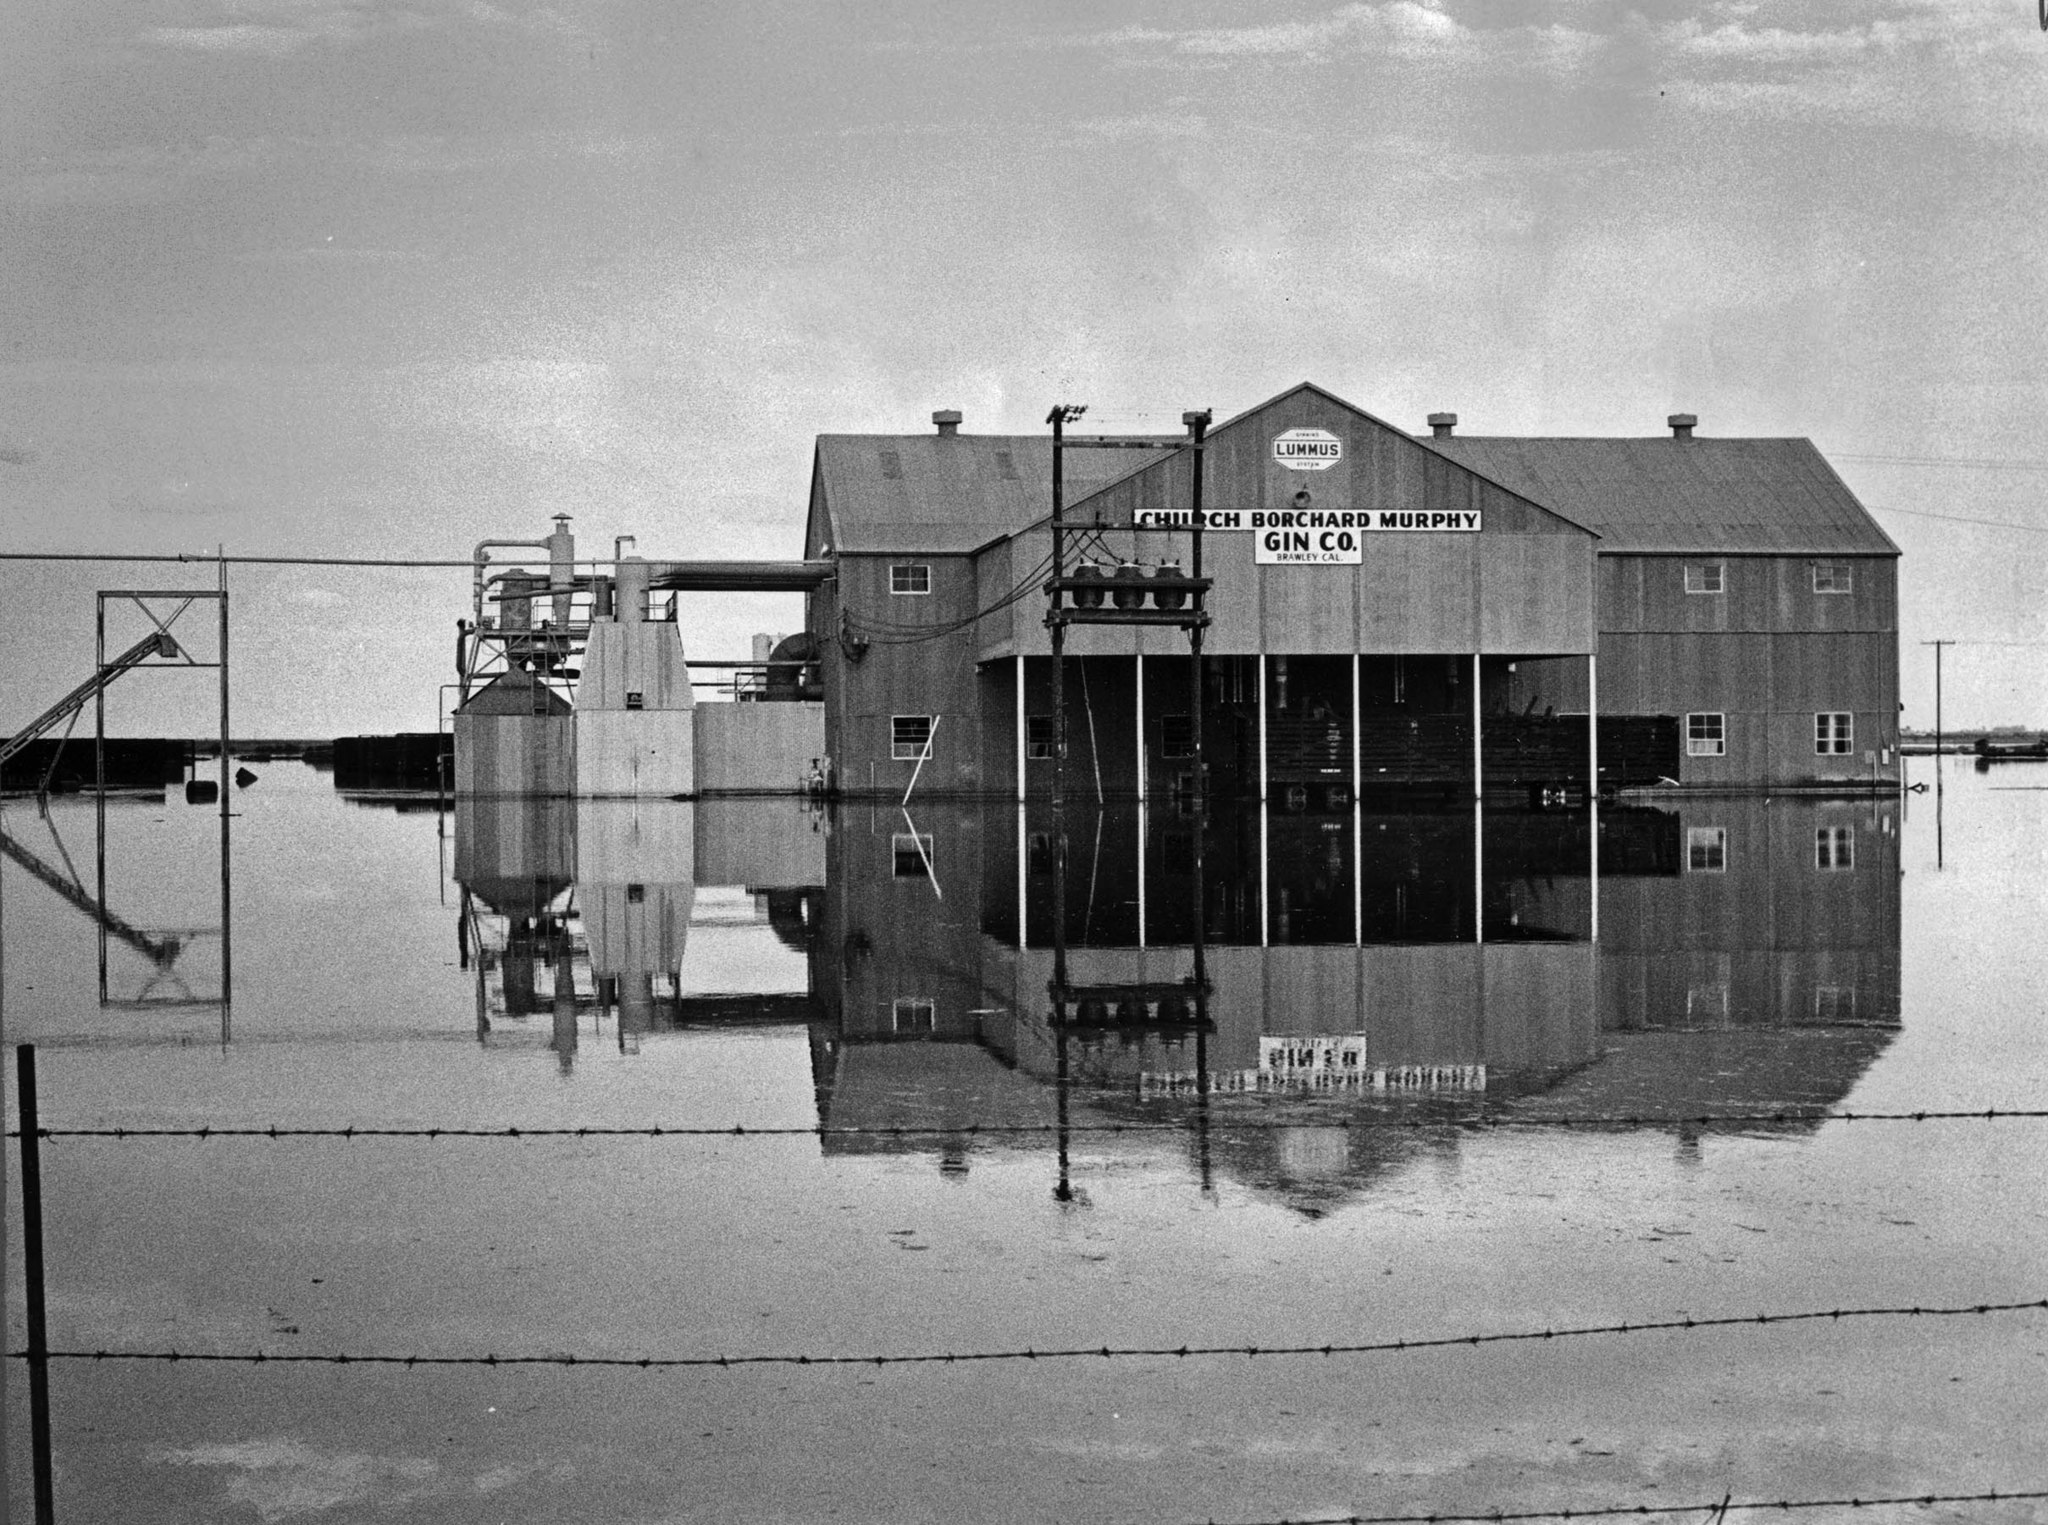 From the Archives: Imperial Valley flooding left by Tropical Storm Doreen